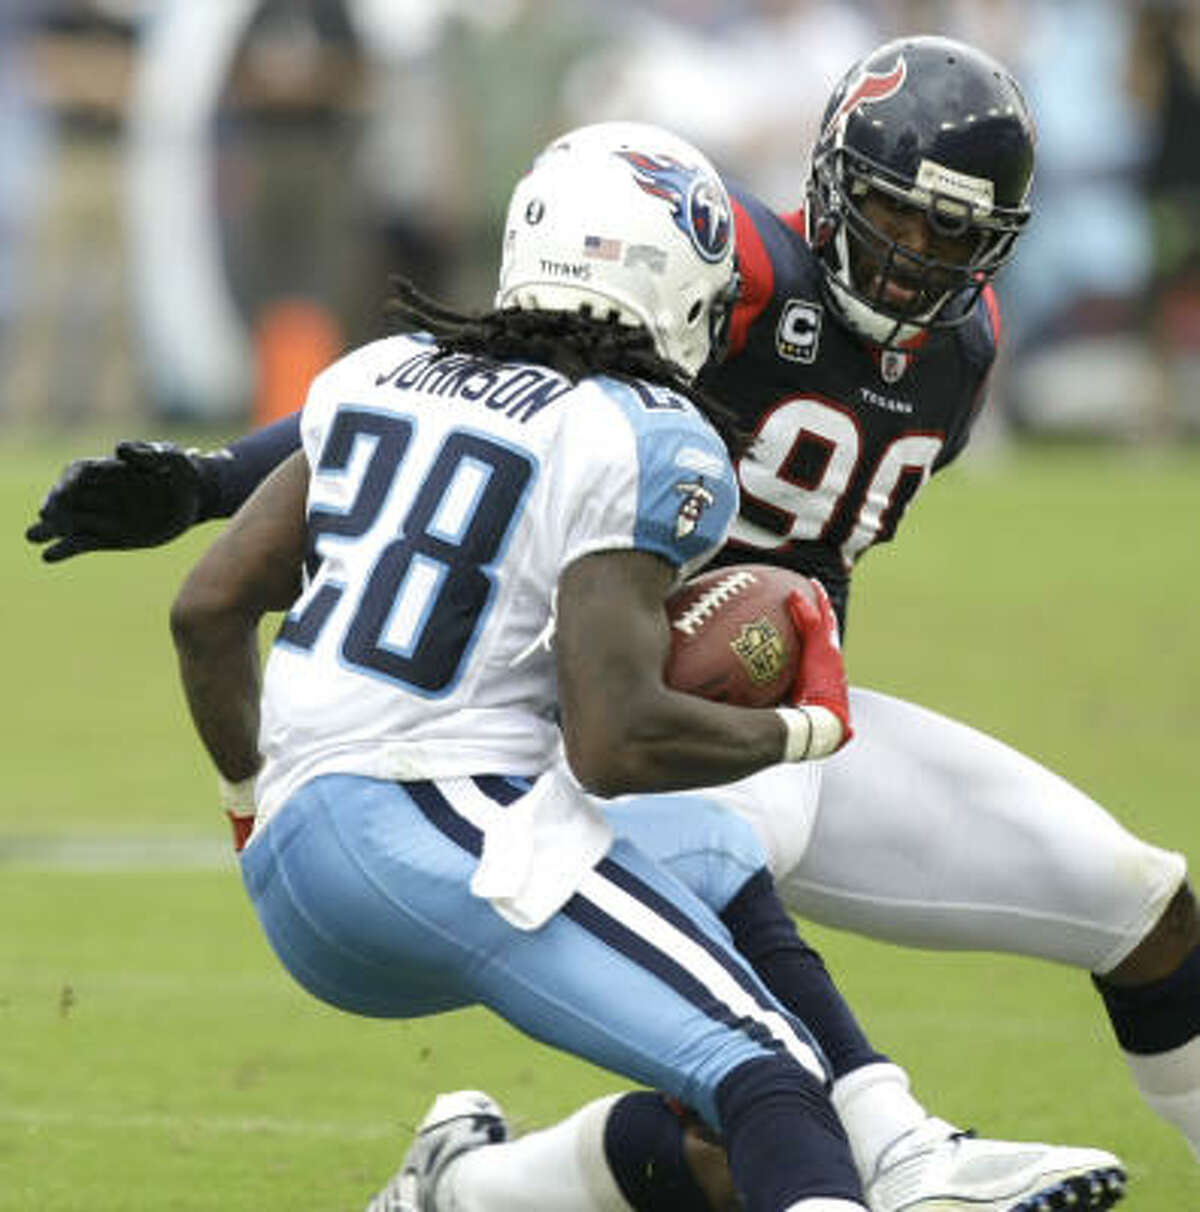 Sept. 20, 2009: The Texans overcame Titans running back Chris Johnson, who rushed for 197 yards and three touchdowns, for a 34-31 victory over the defending AFC South champions in Nashville. Texans quarterback Matt Schaub threw for 357 yards and four touchdowns, and Kris Brown kicked a 23-yard field goal in the closing minutes.